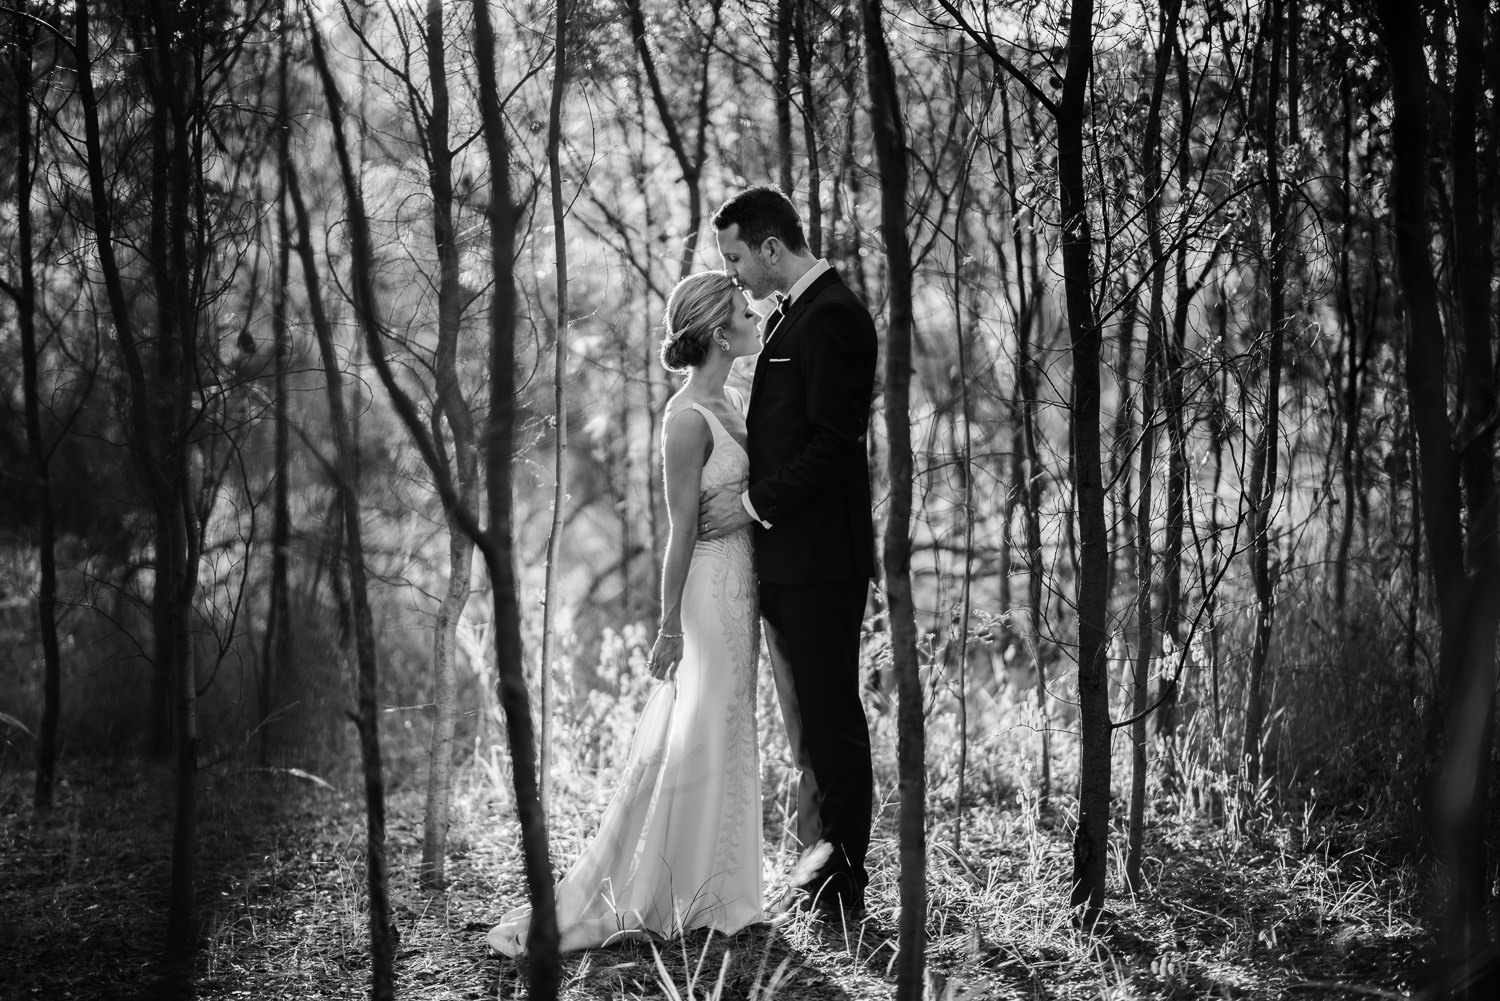 Jess + Lach - Elegance at Luminare, South Melbourne